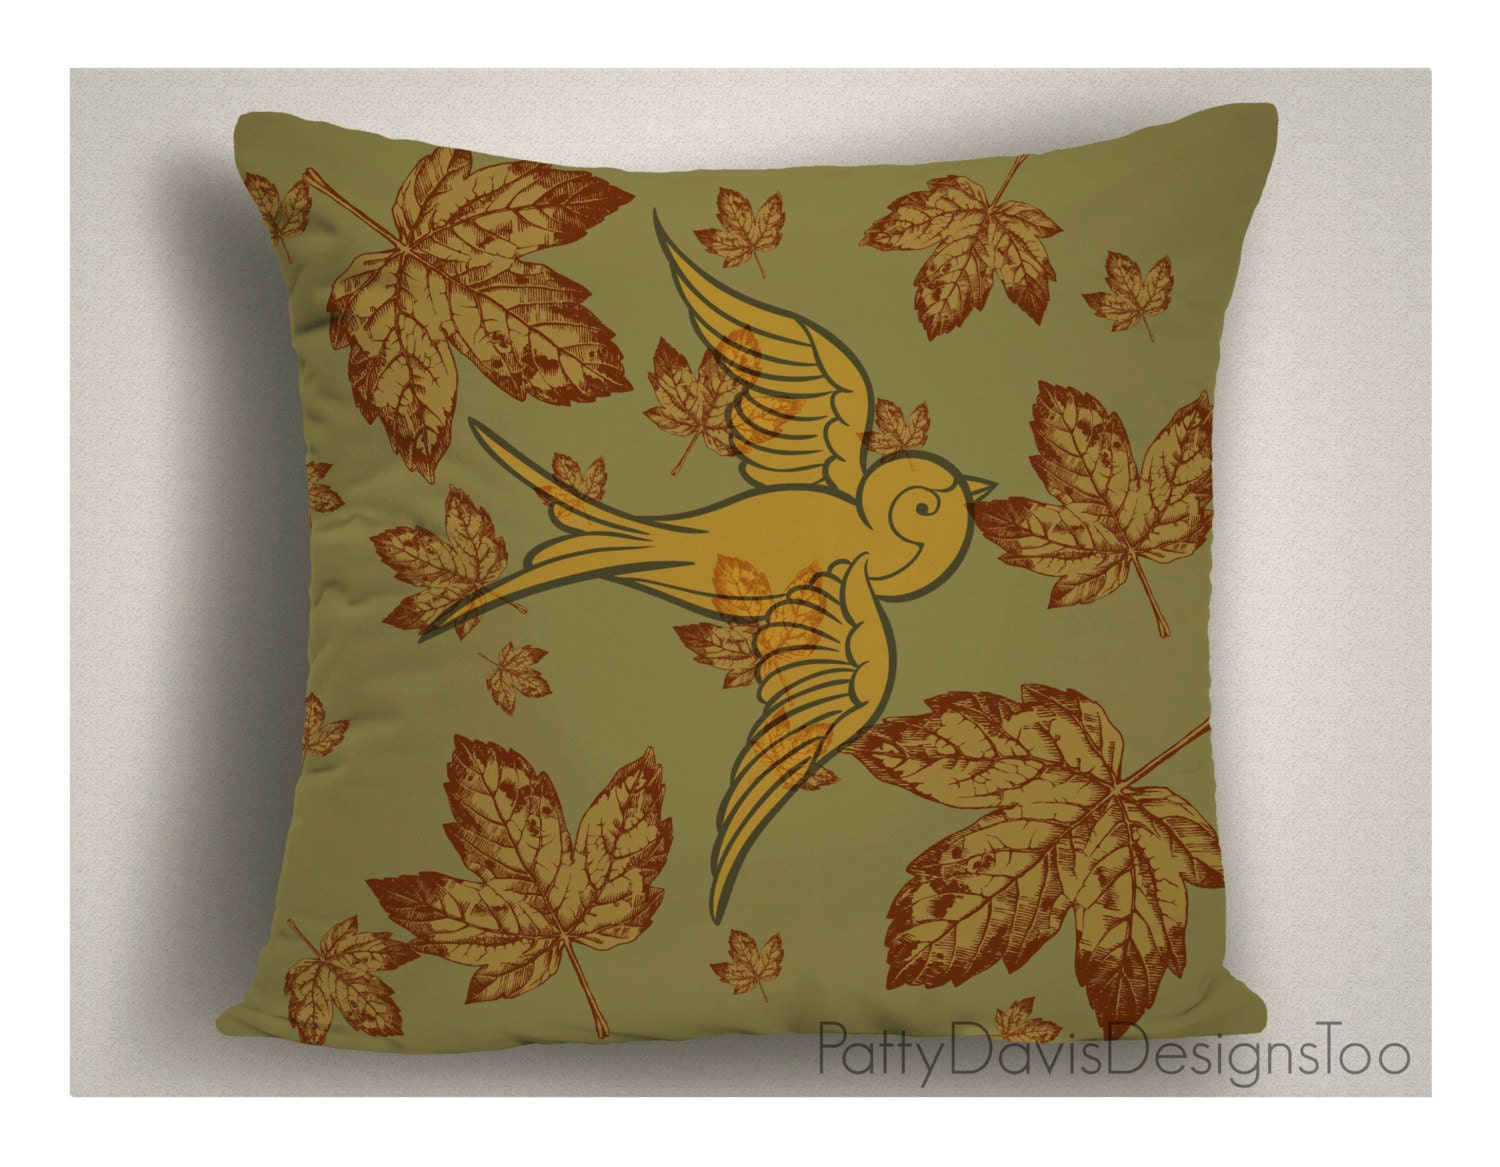 Decorative Throw Pillow, Two Sided, Washable, Green and Gold, Flourish, Birds, Leaves